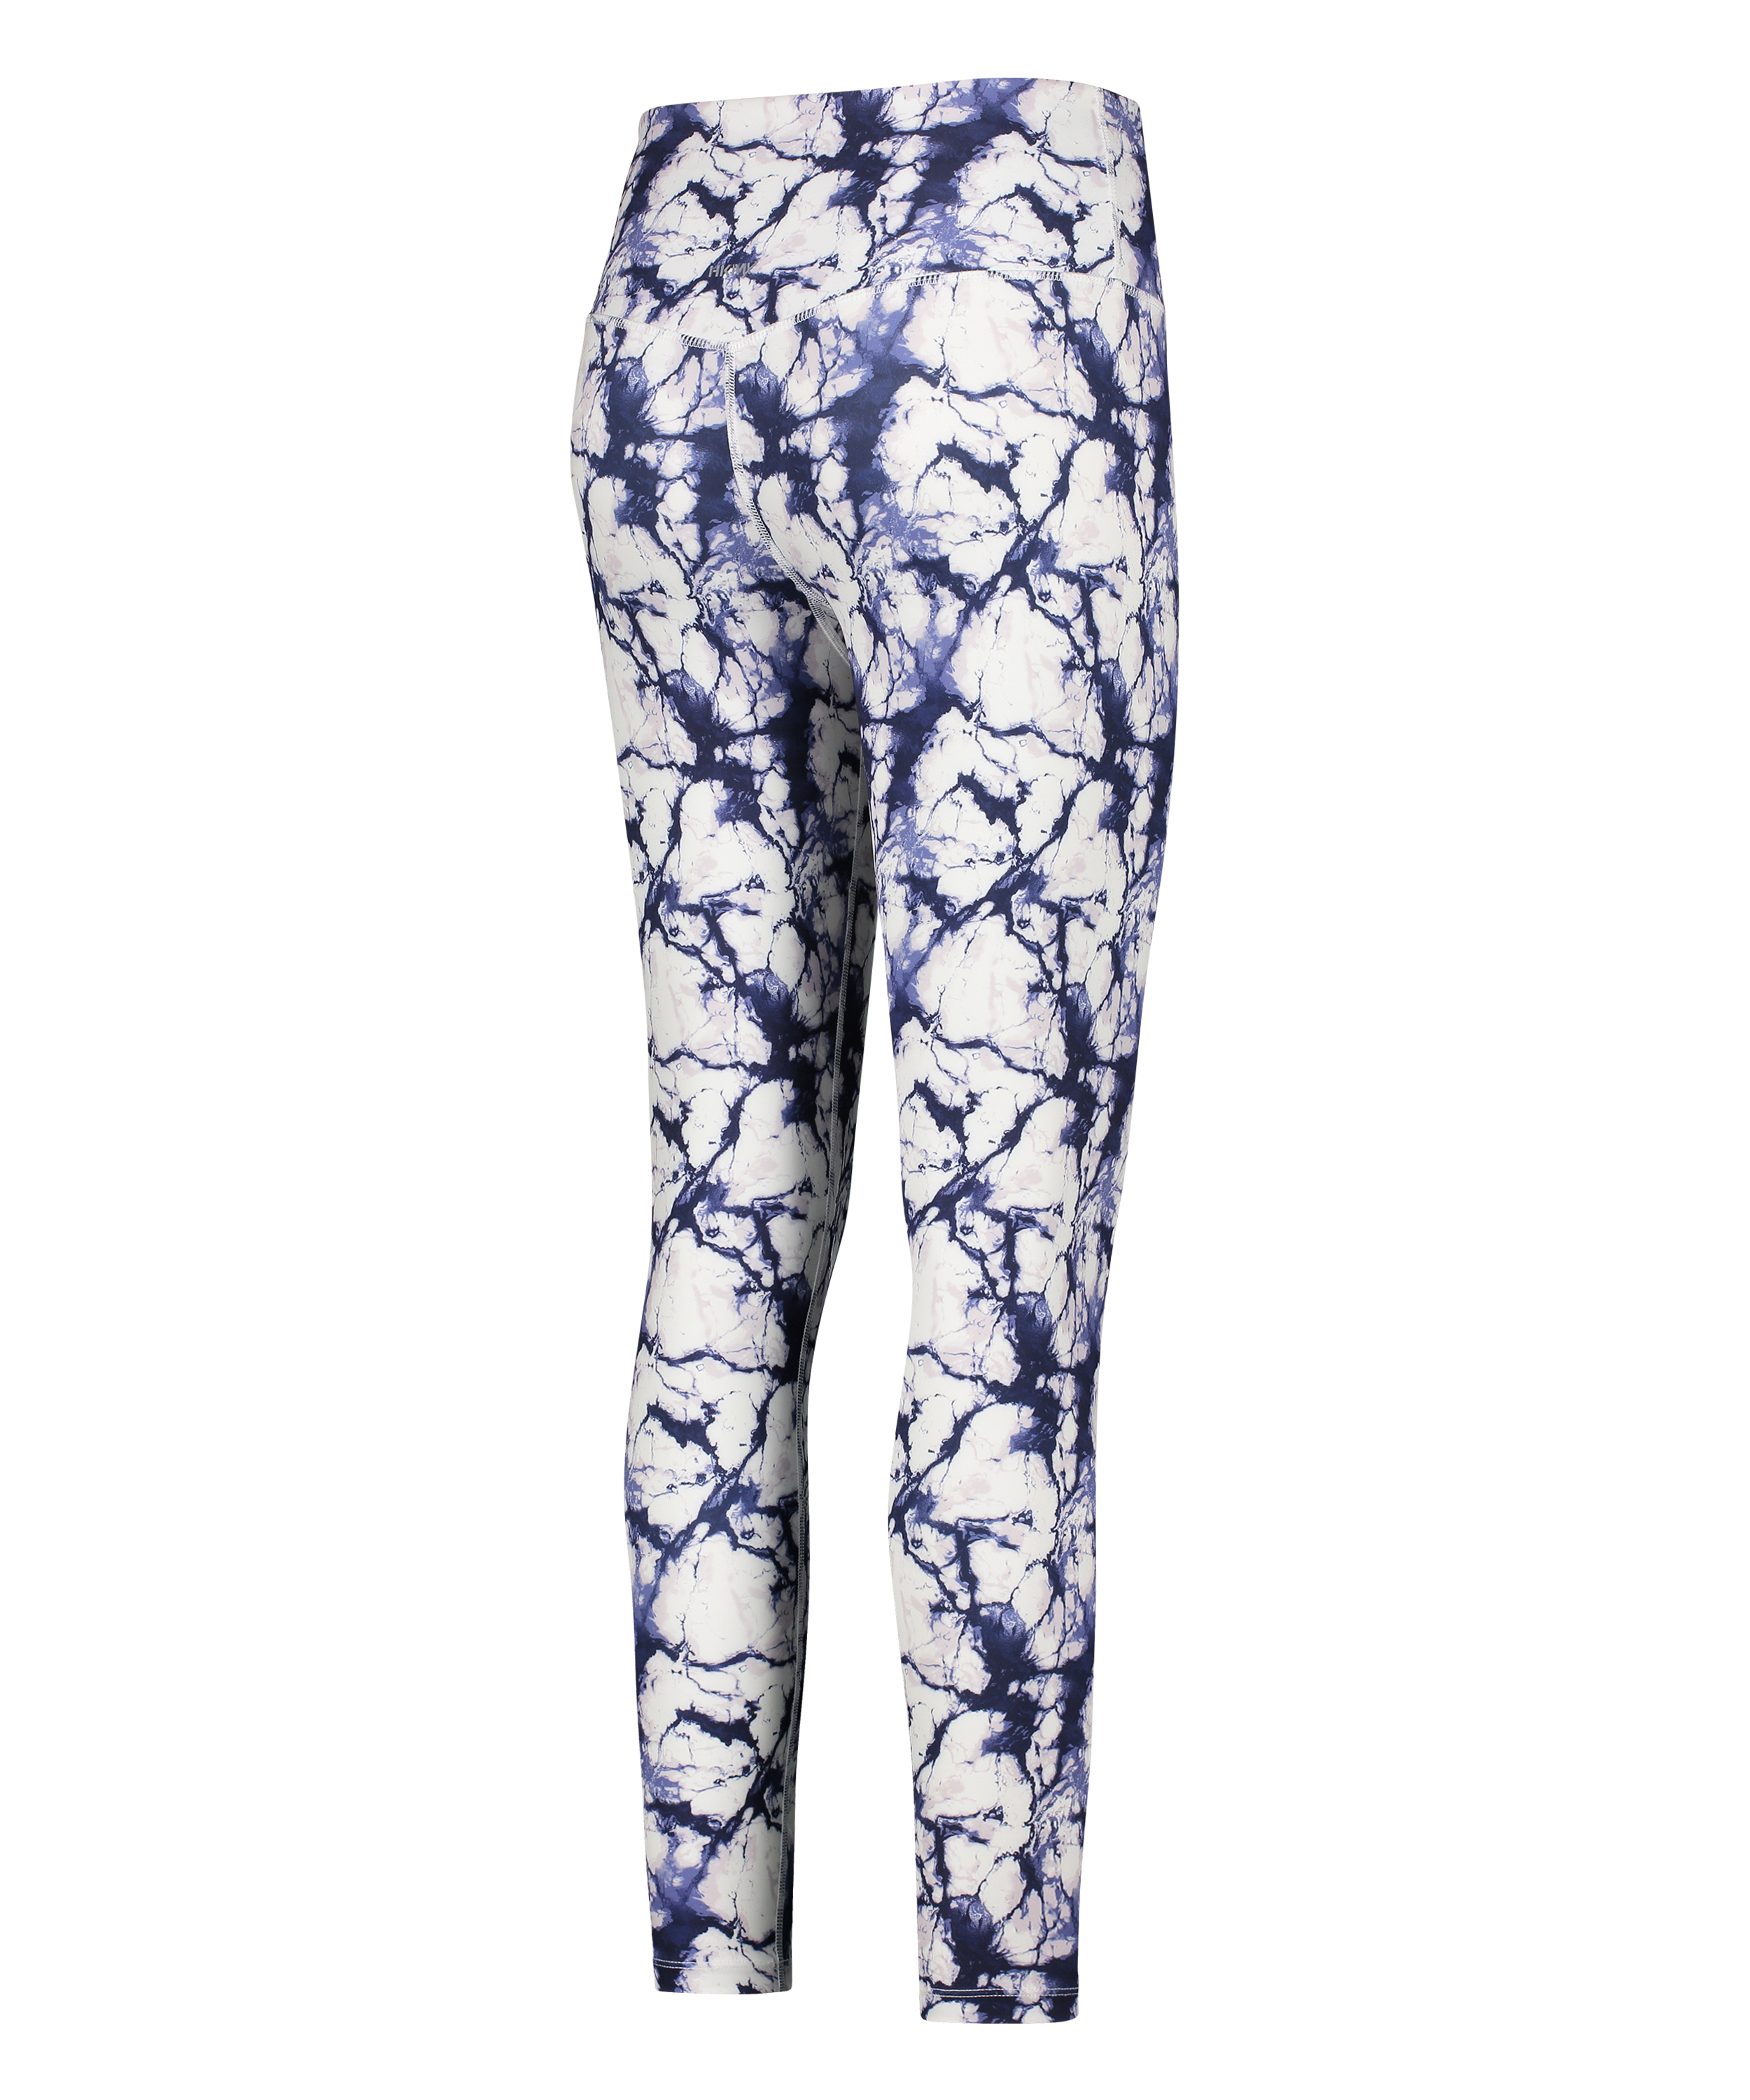 HKMX Oh My Squat High Waisted Legging , Wit, main